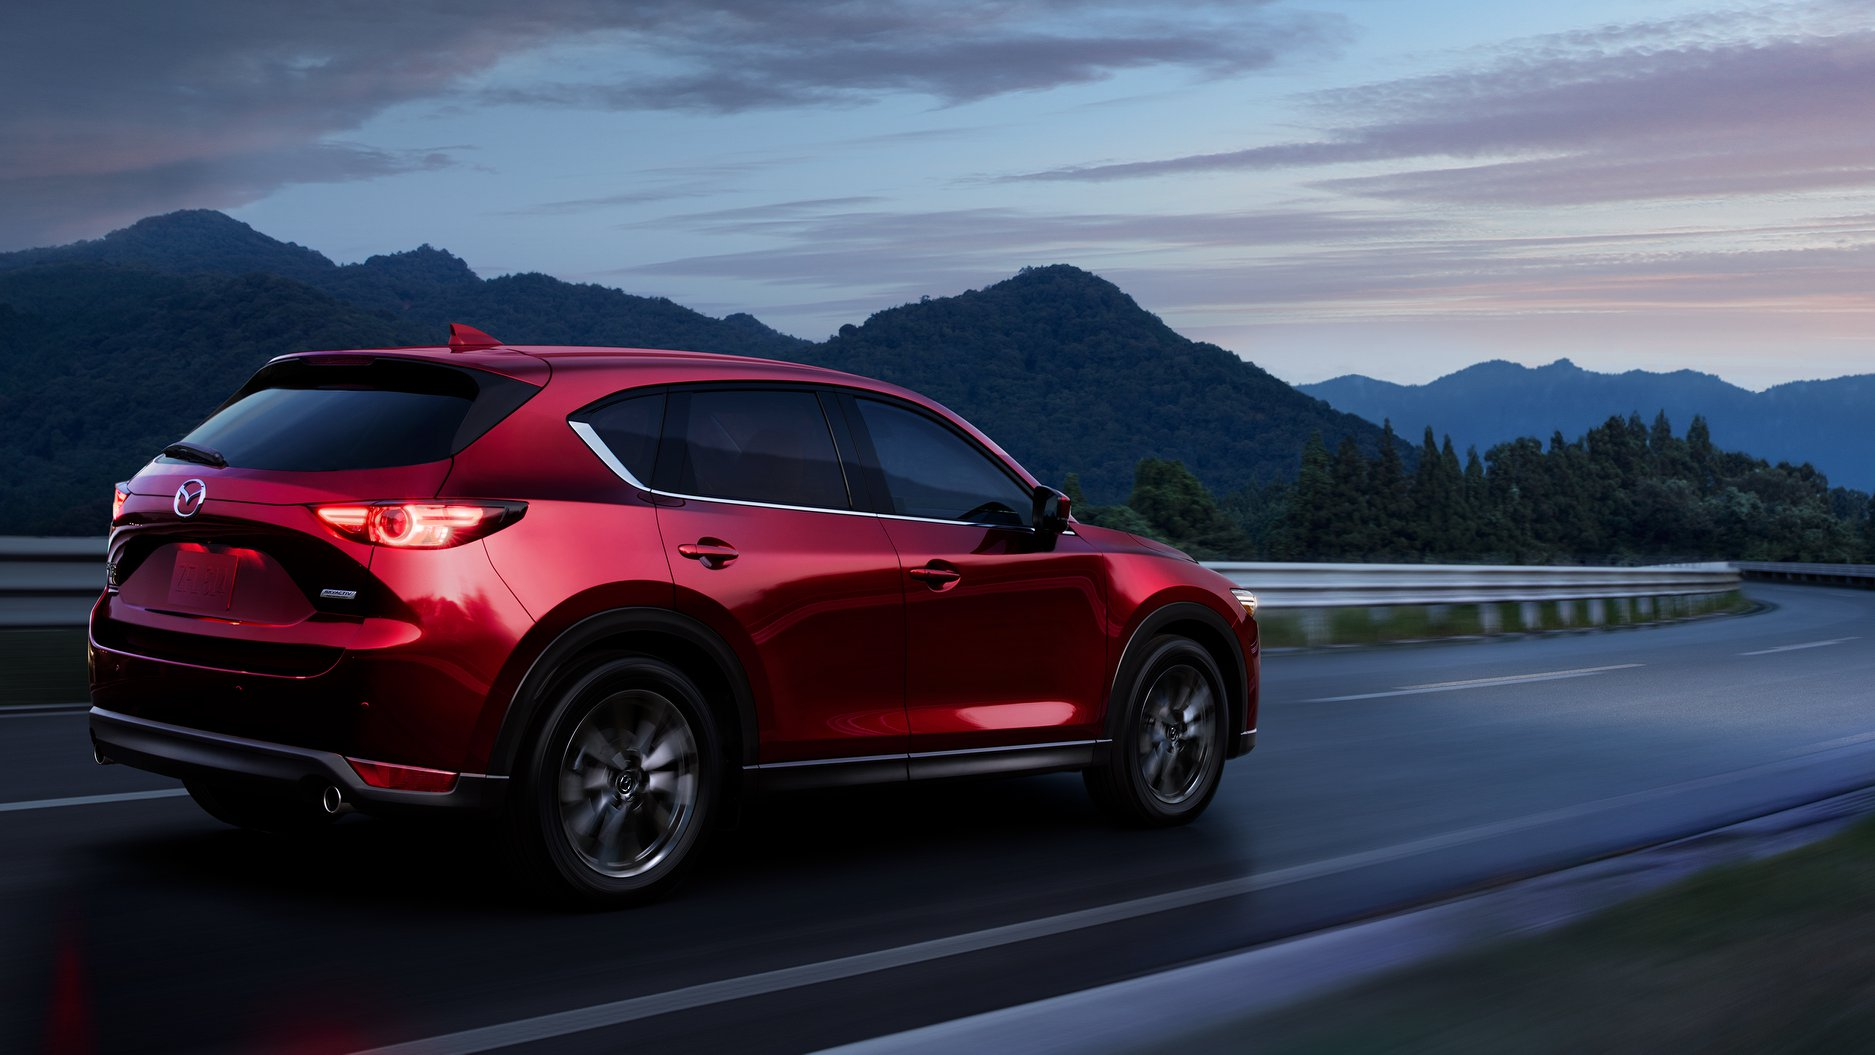 Red 2019 Mazda CX-5 Touring on road